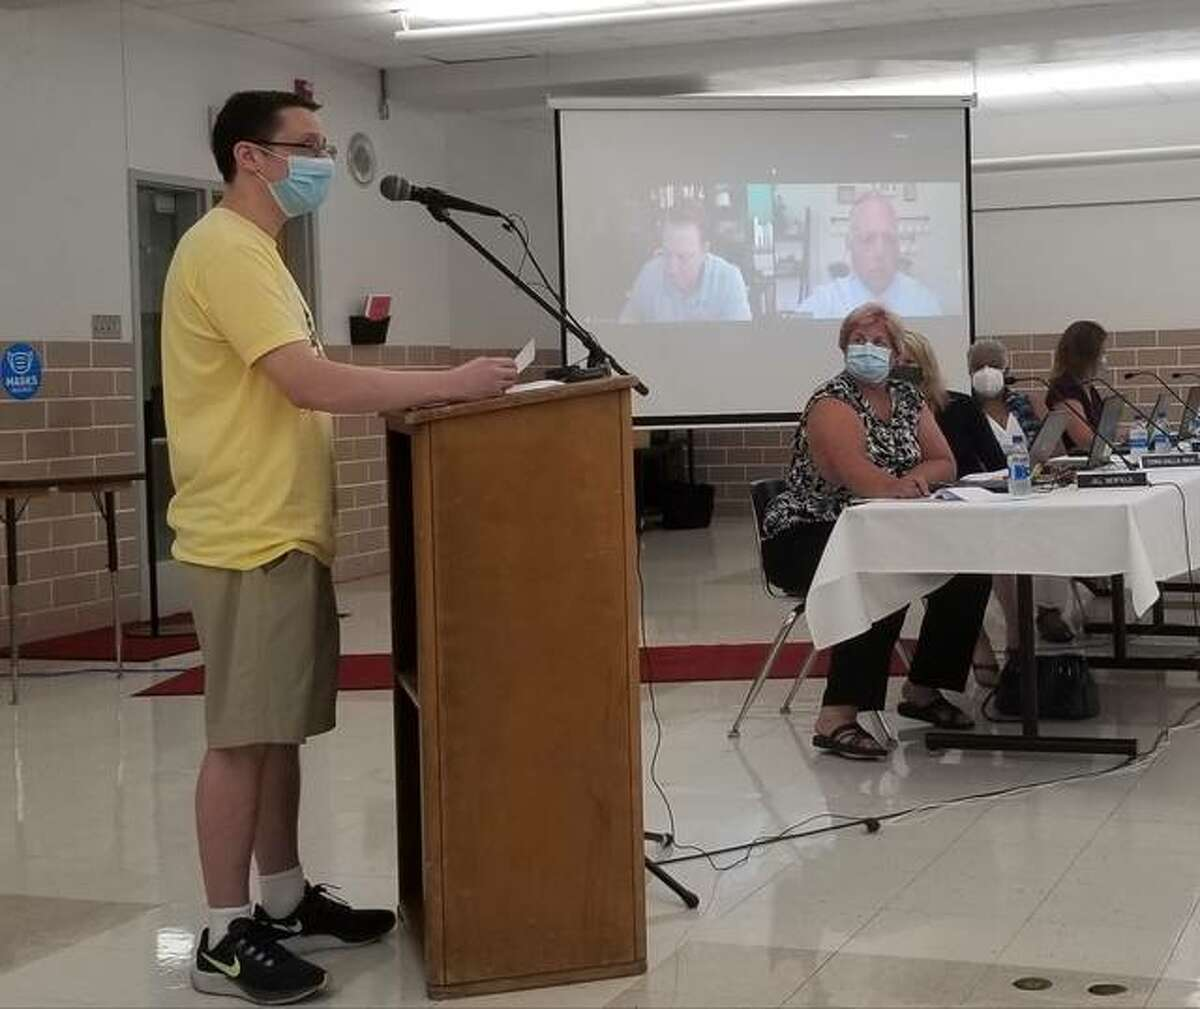 Parent Byron Hotson spoke in support of the district's plan and mask mandate.